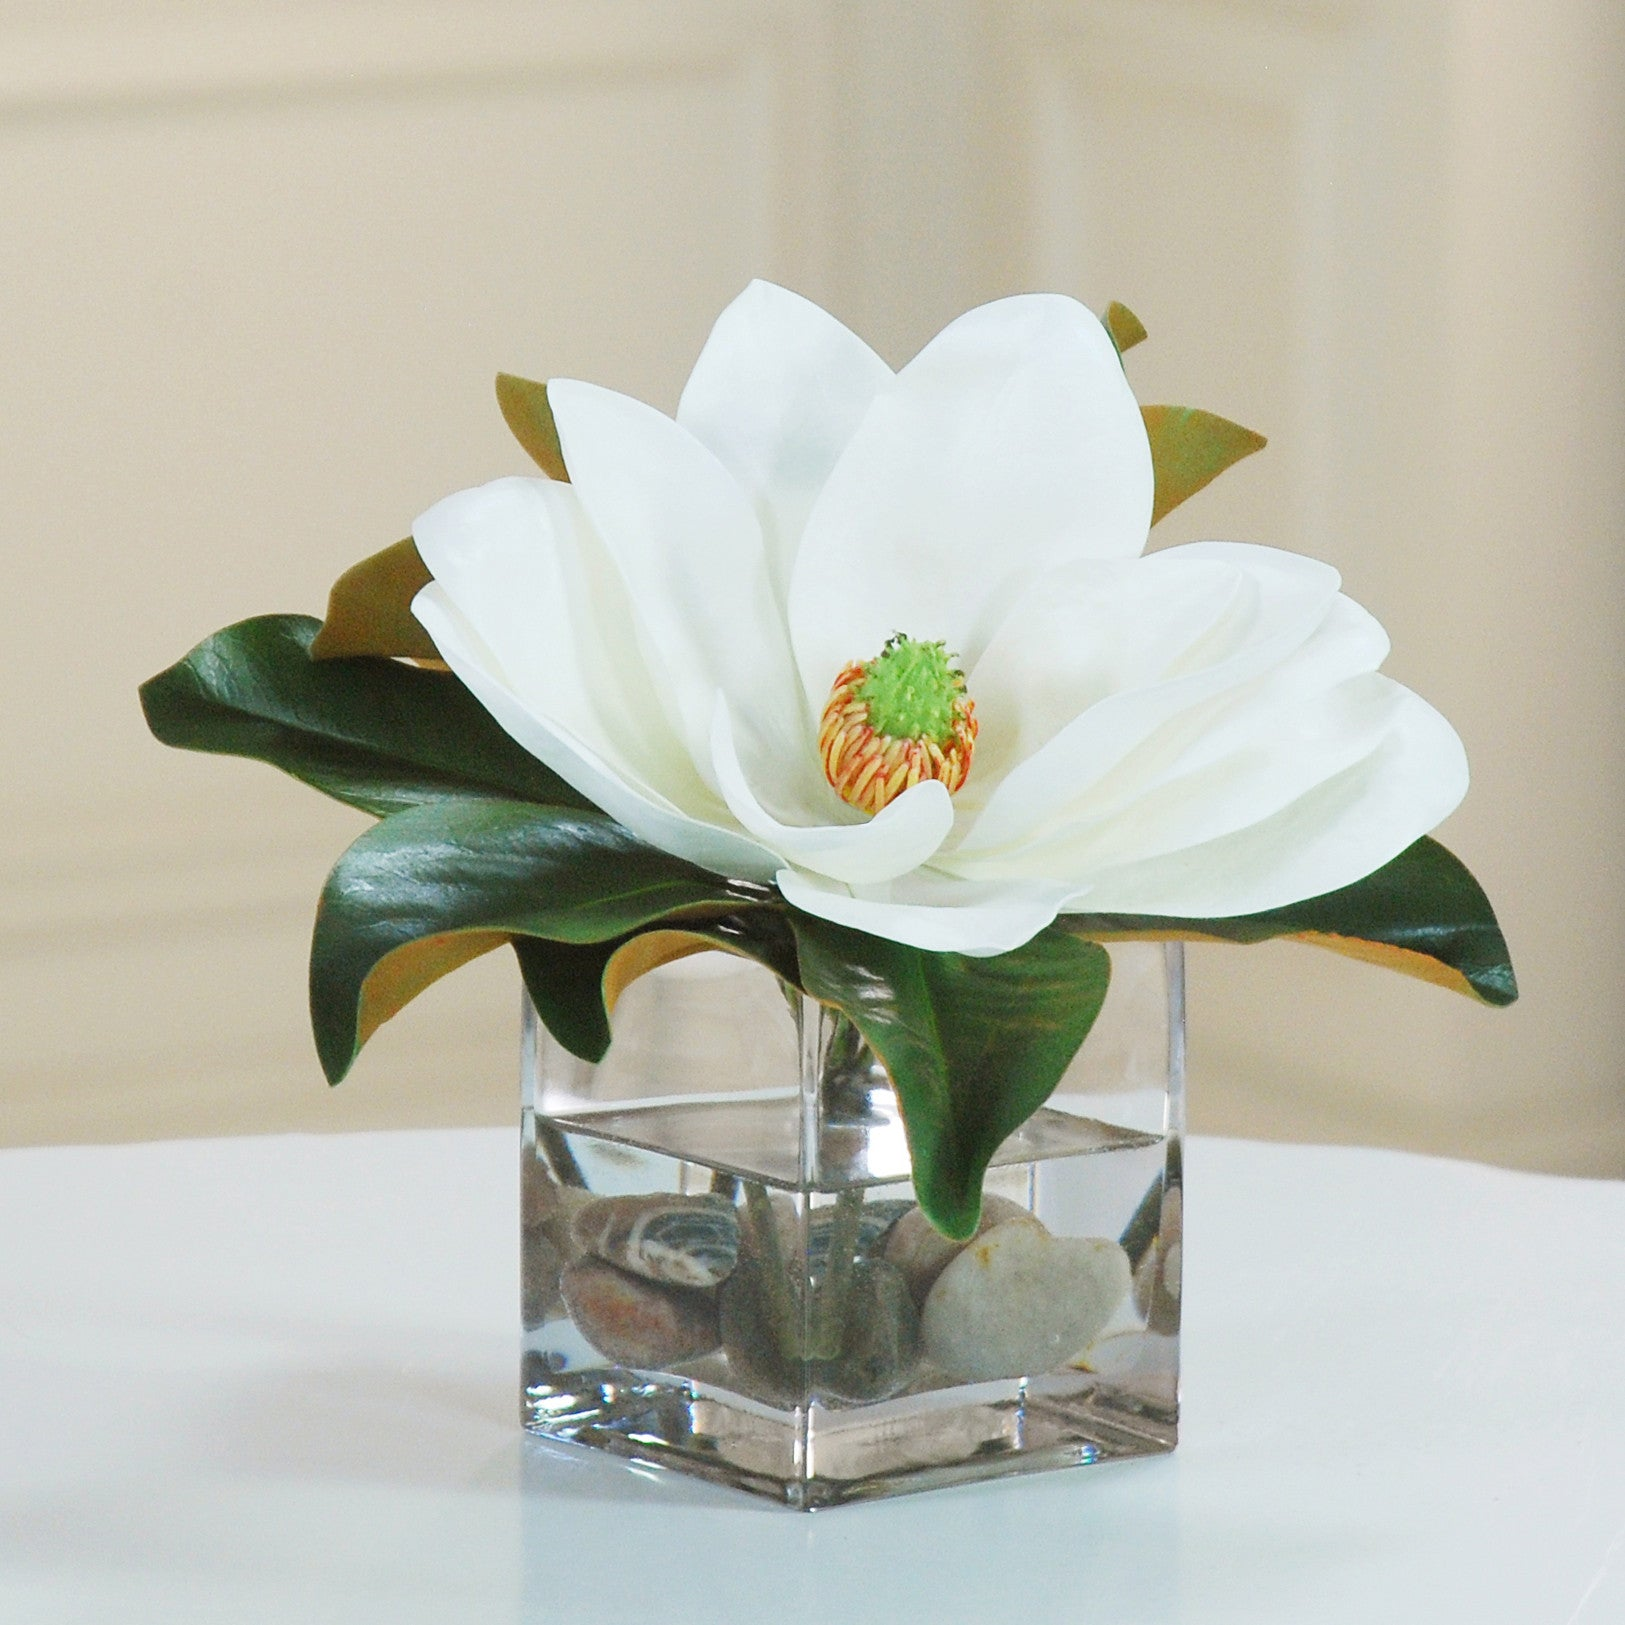 STATEMENT MAGNOLIA CUBE (WHDP146-WHGR) - Winward Home faux floral arrangements